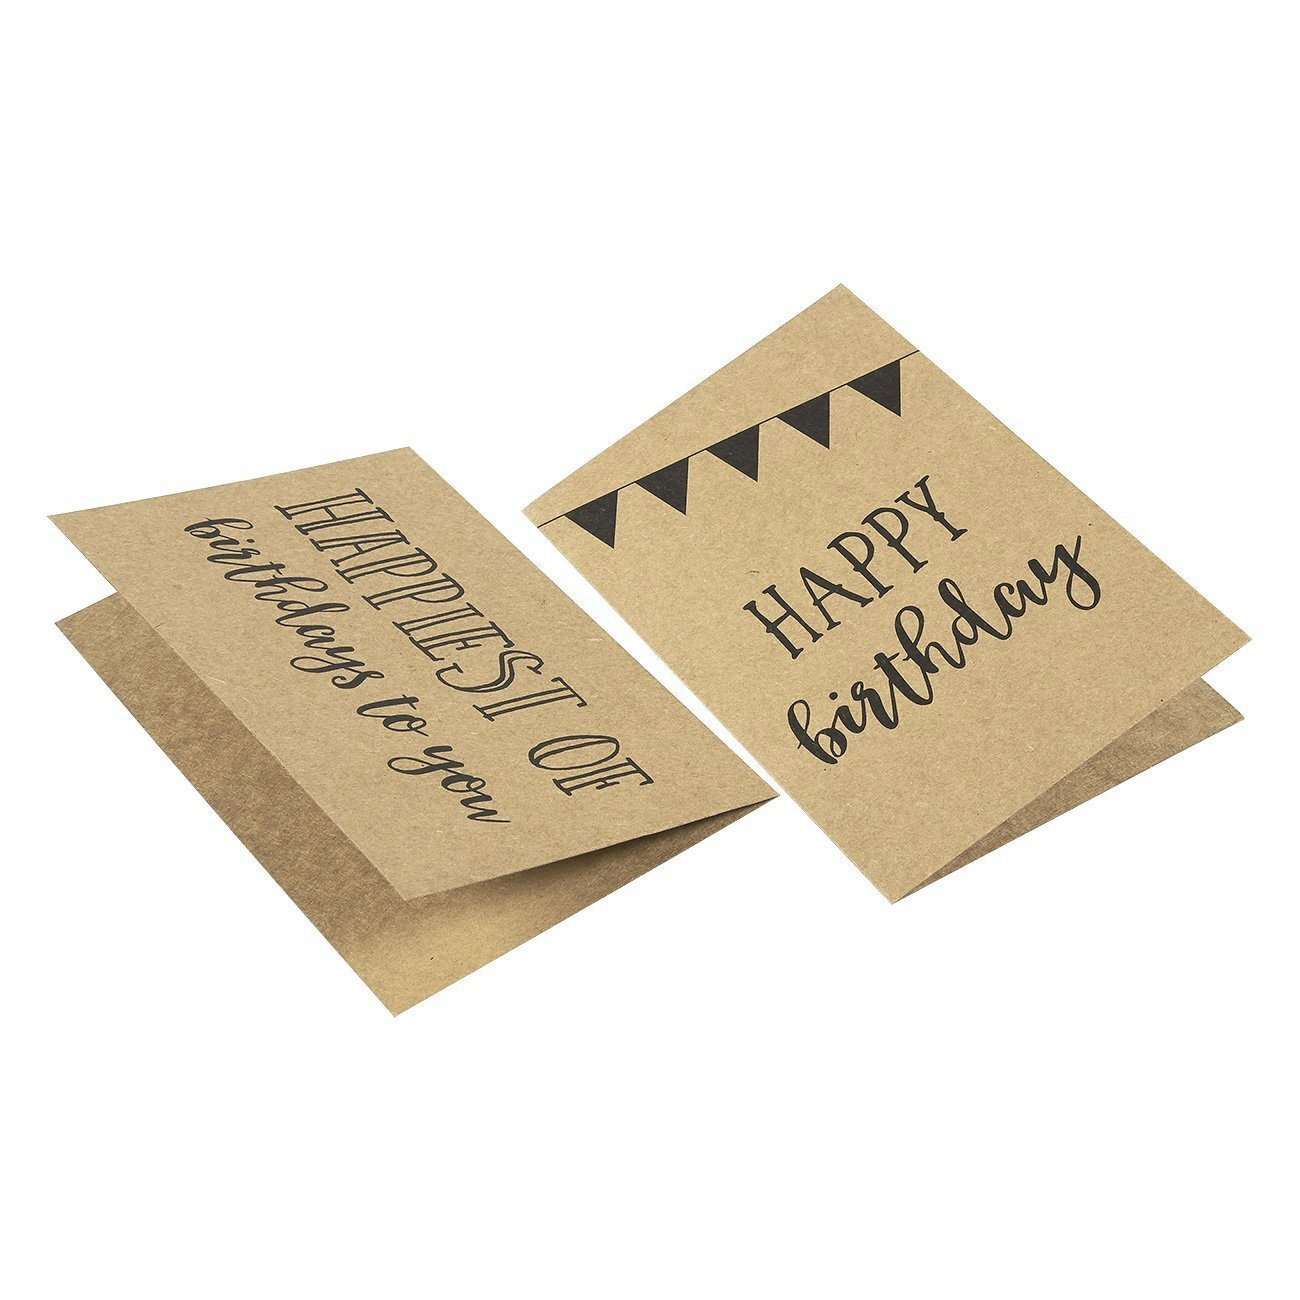 36 Pack Assorted All Occasion Kraft Greeting Cards - Includes Assorted Happy Birthday, Congratulations, Sympathy, Thank You Cards - Bulk Box Set Variety Pack with Envelopes Included - 4 x 6 inches by Best Paper Greetings (Image #7)